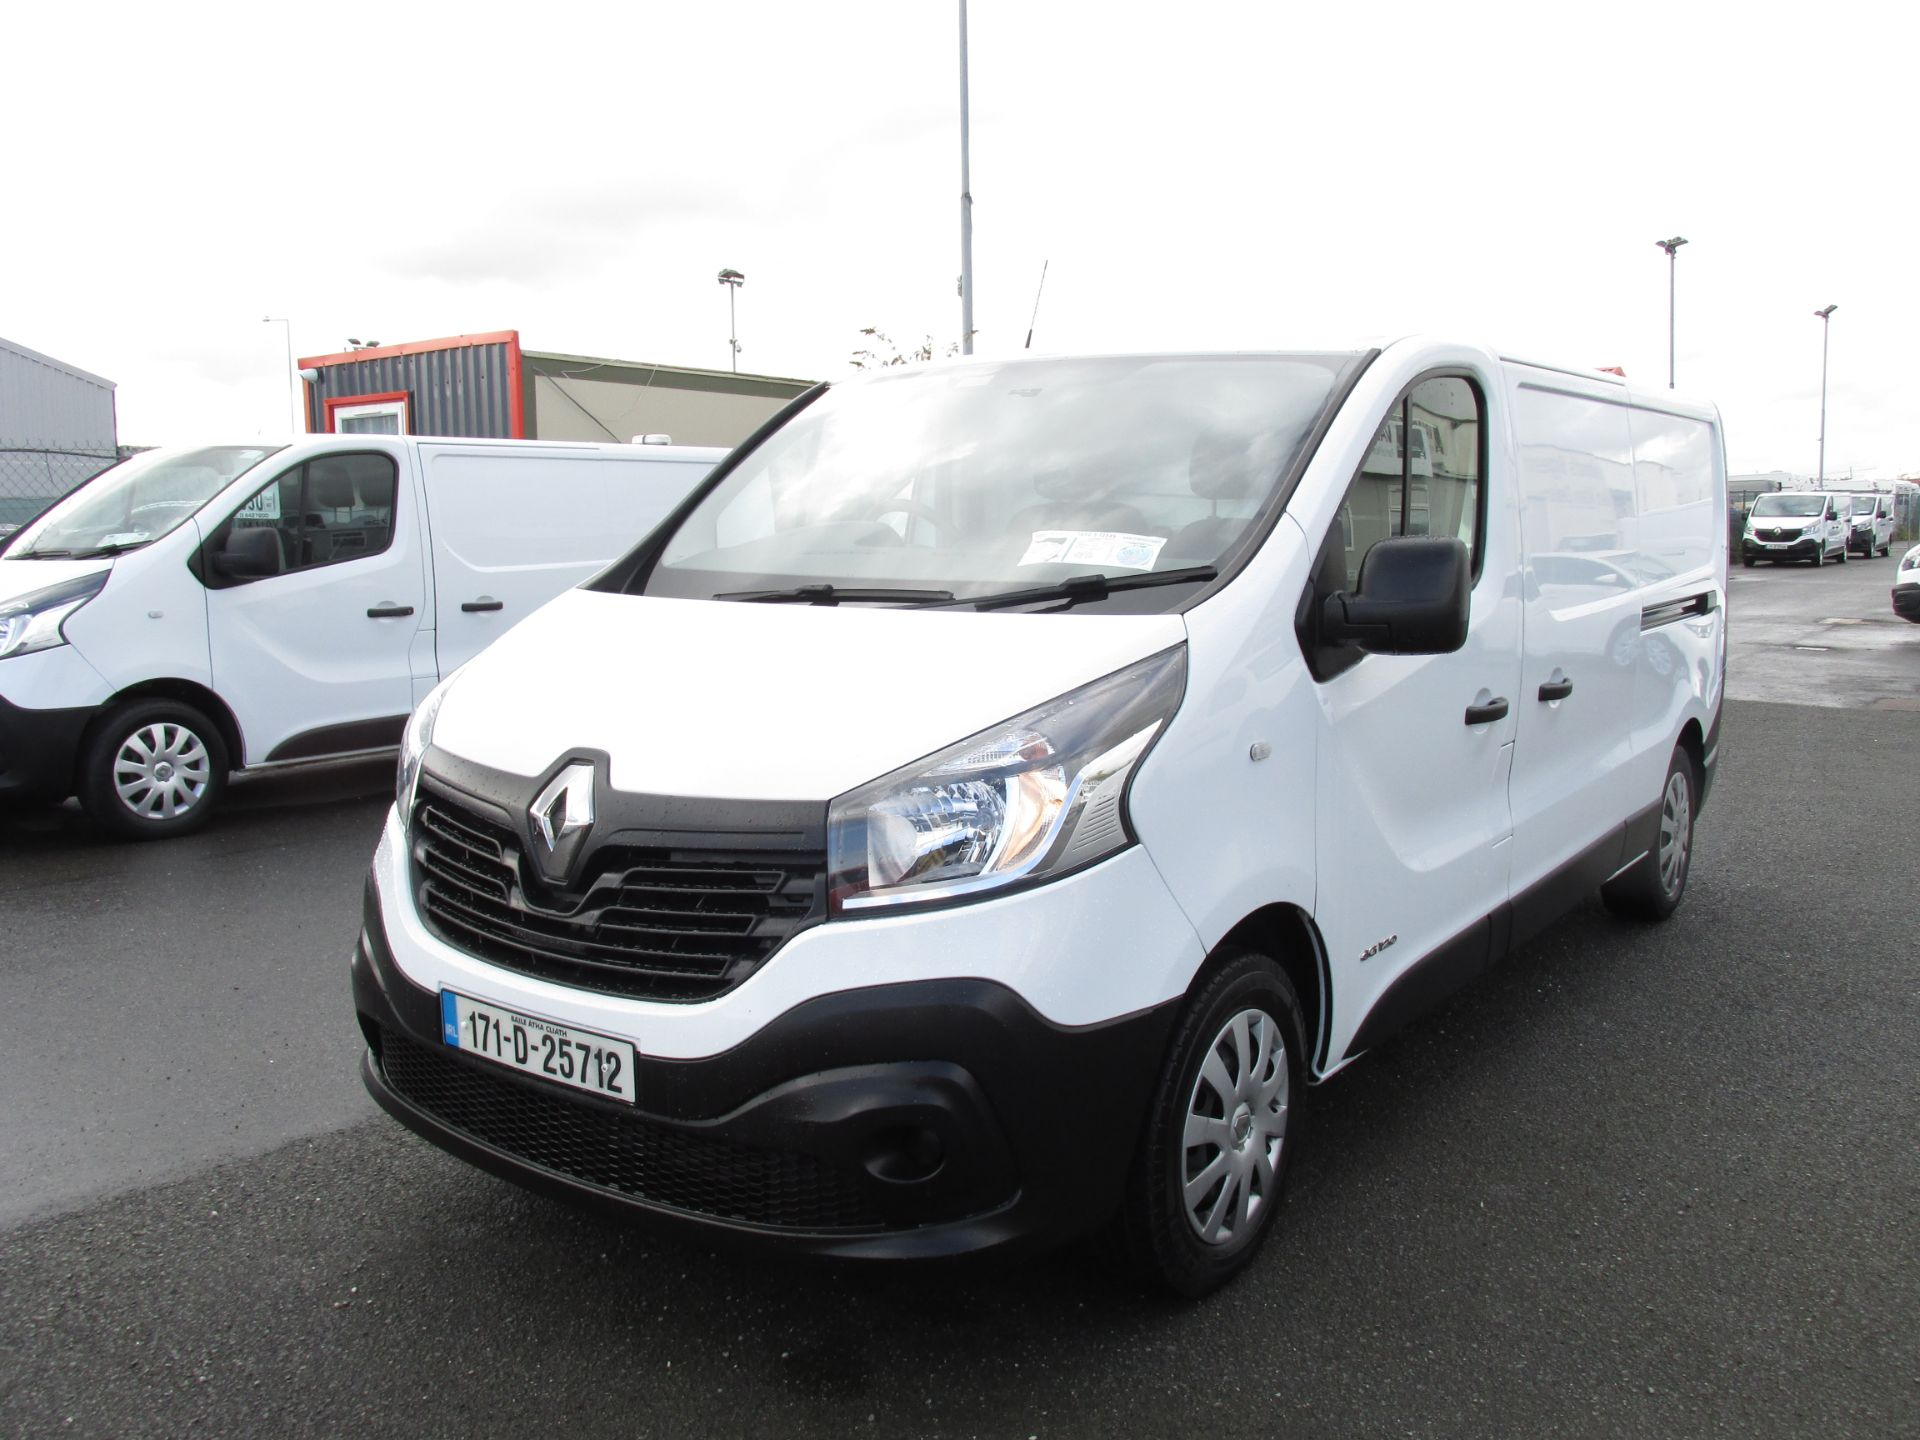 2017 Renault Trafic LL29 DCI 120 Business 3DR (171D25712) Image 3